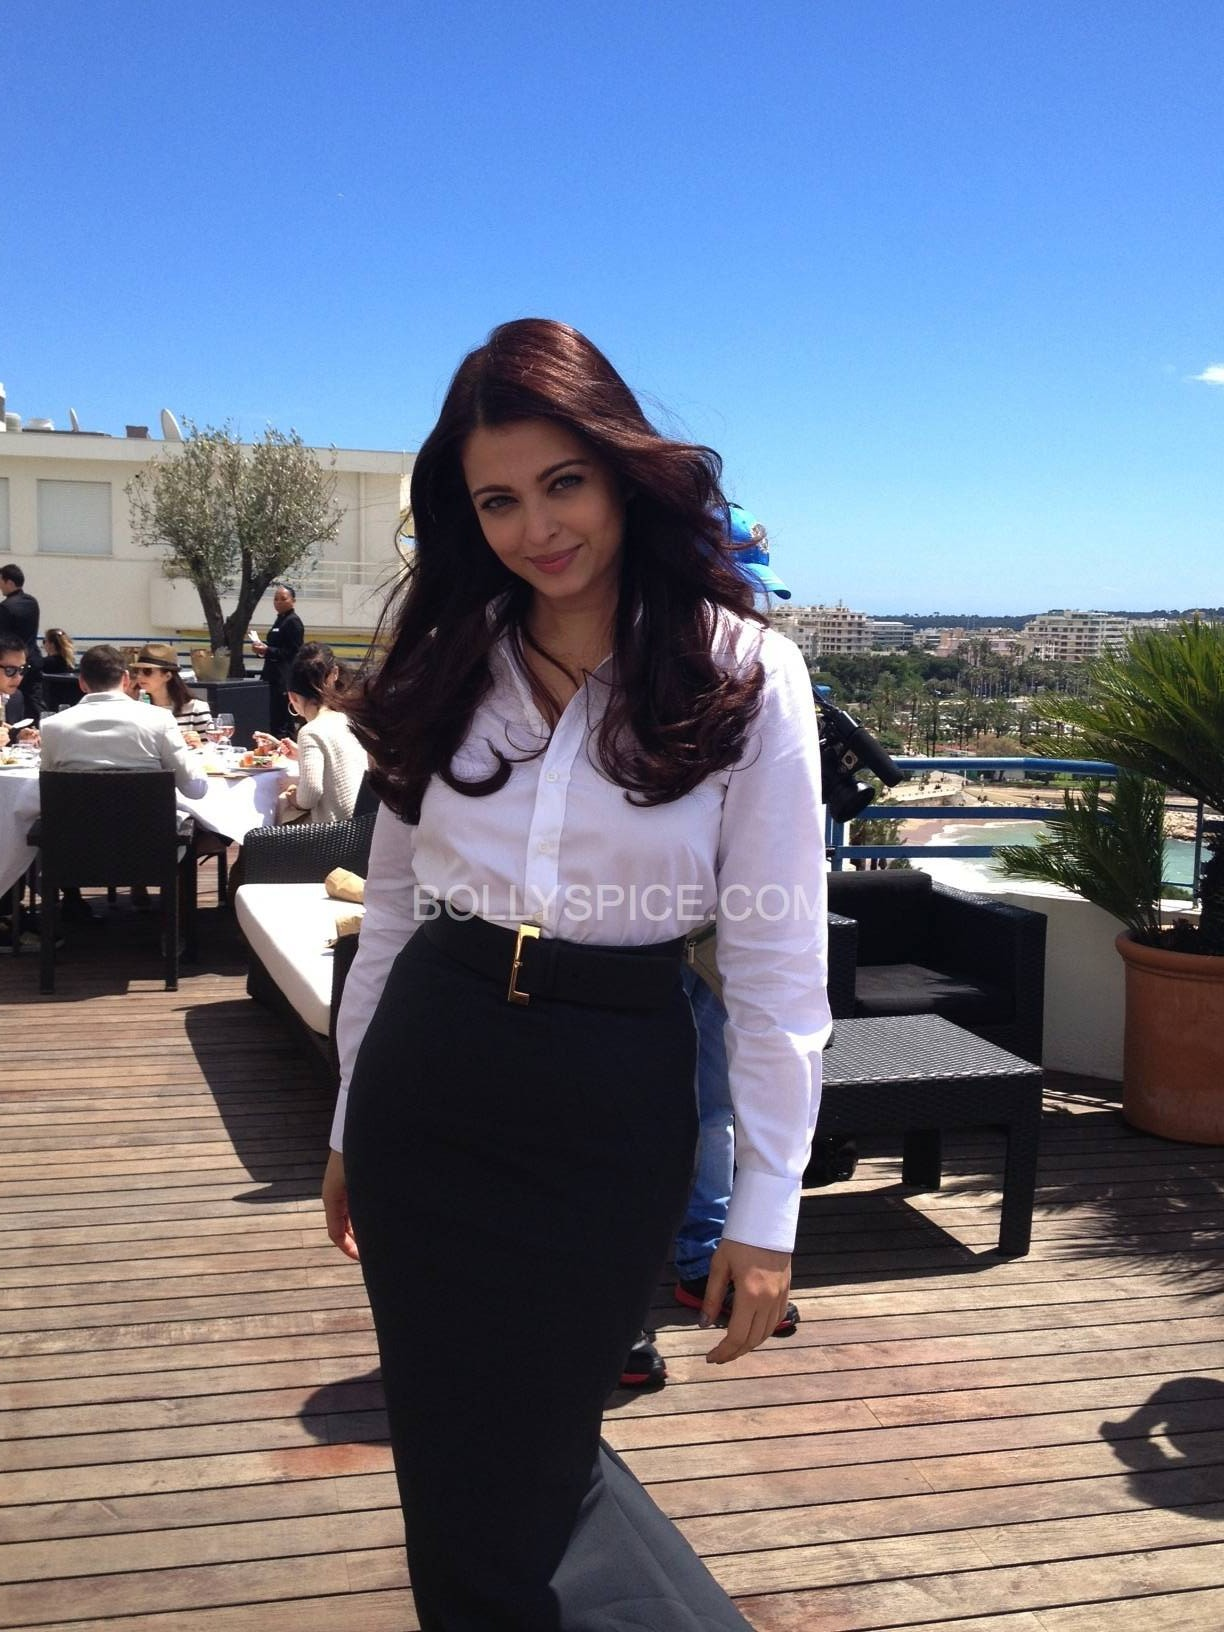 aishwaryaatcannes2013 e1368979082359 First Look: The Gorgeous Aishwarya Rai Bachchan at Cannes!